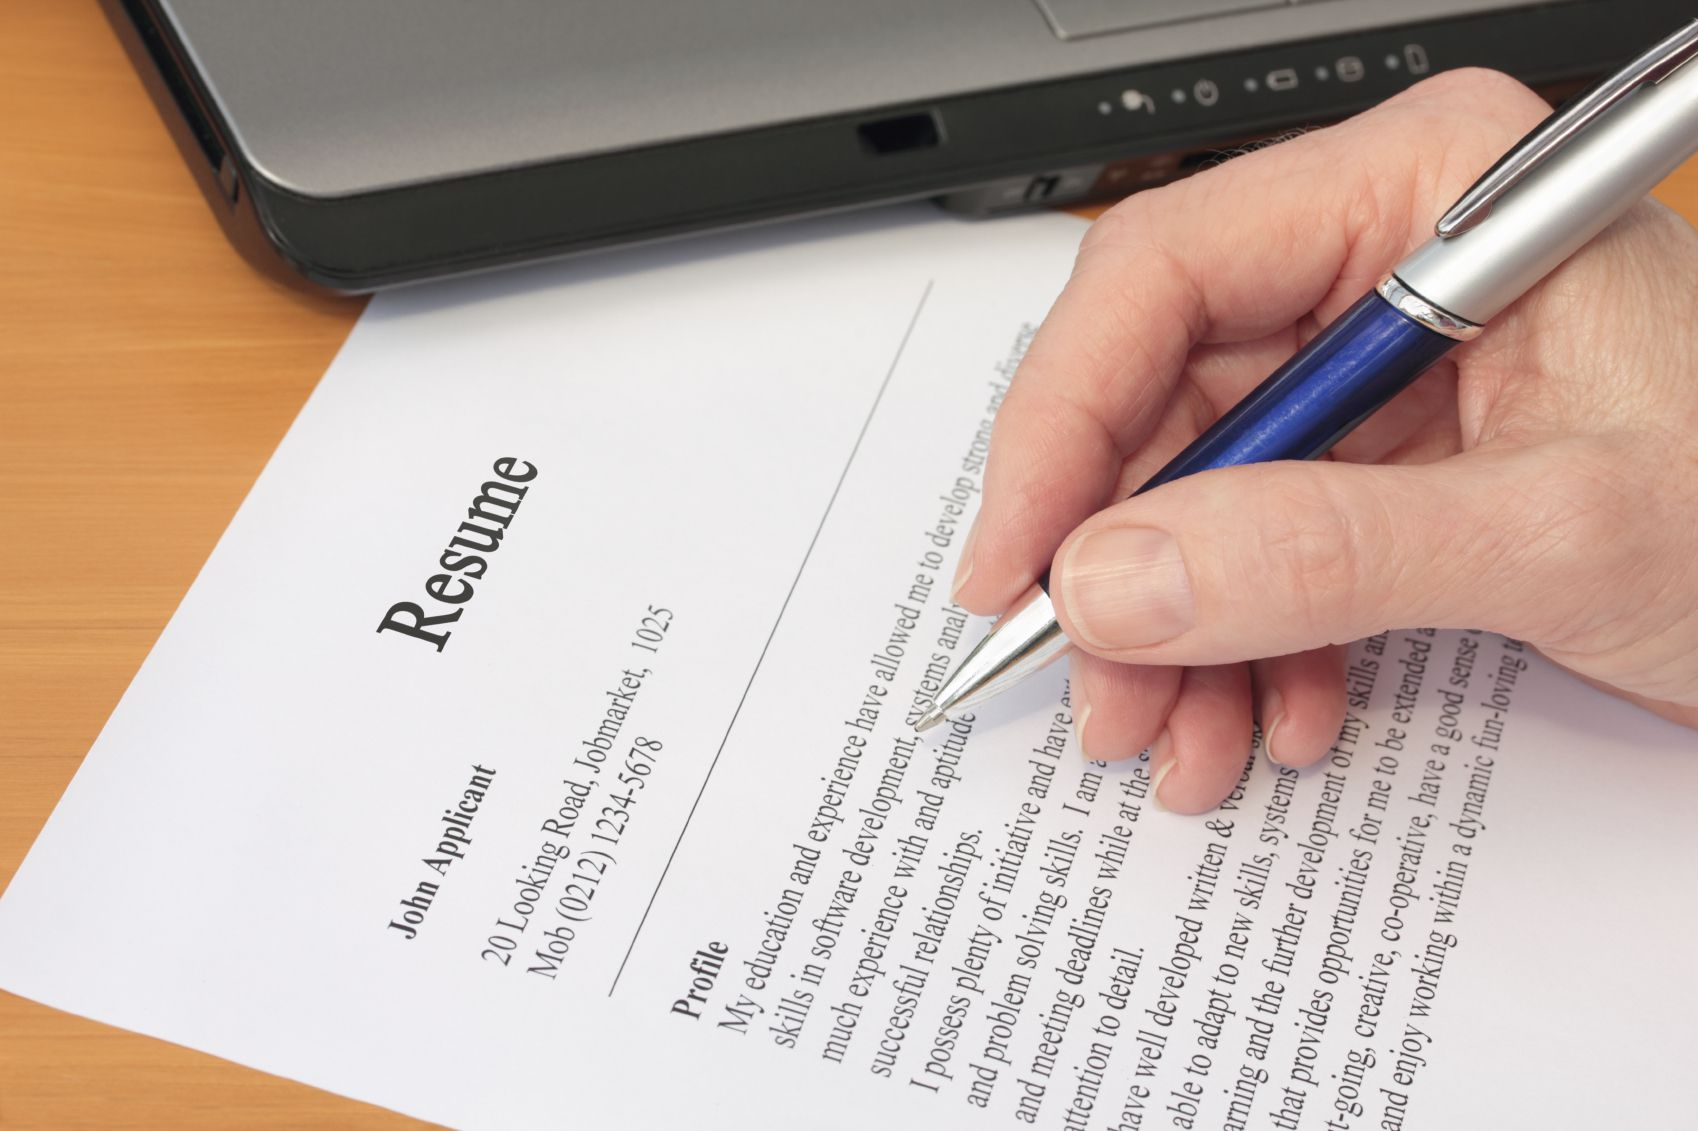 What To Know About Writing Samples When Job Hunting Tips For Editing And Proofreading Your Resume